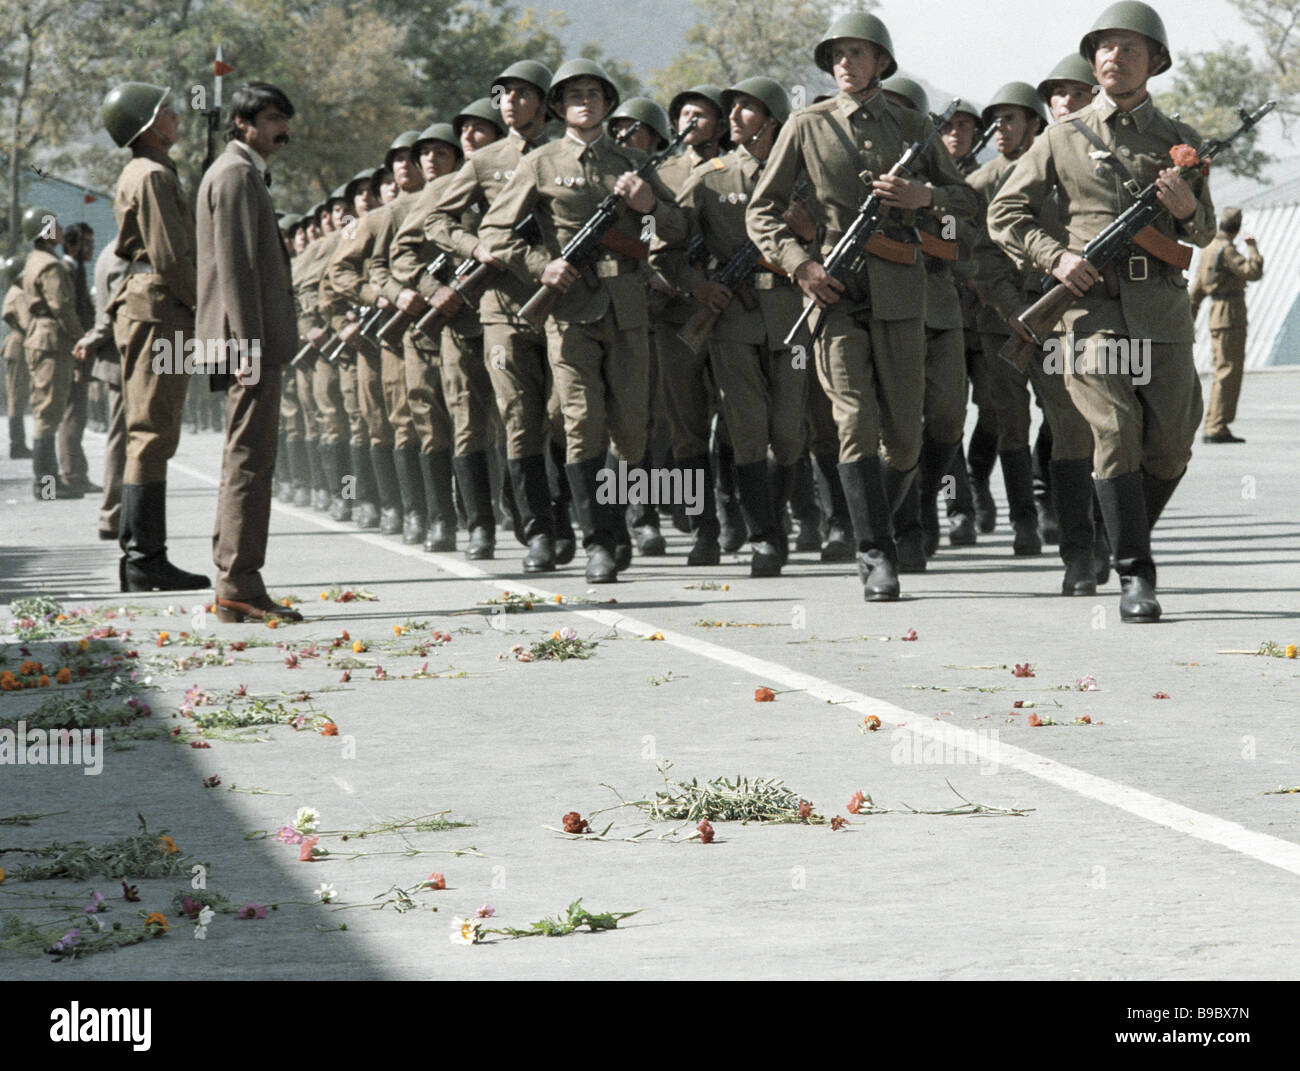 Soviet Afghanistan war - Page 6 Parade-on-the-occasion-of-the-soviet-military-contingent-s-return-B9BX7N